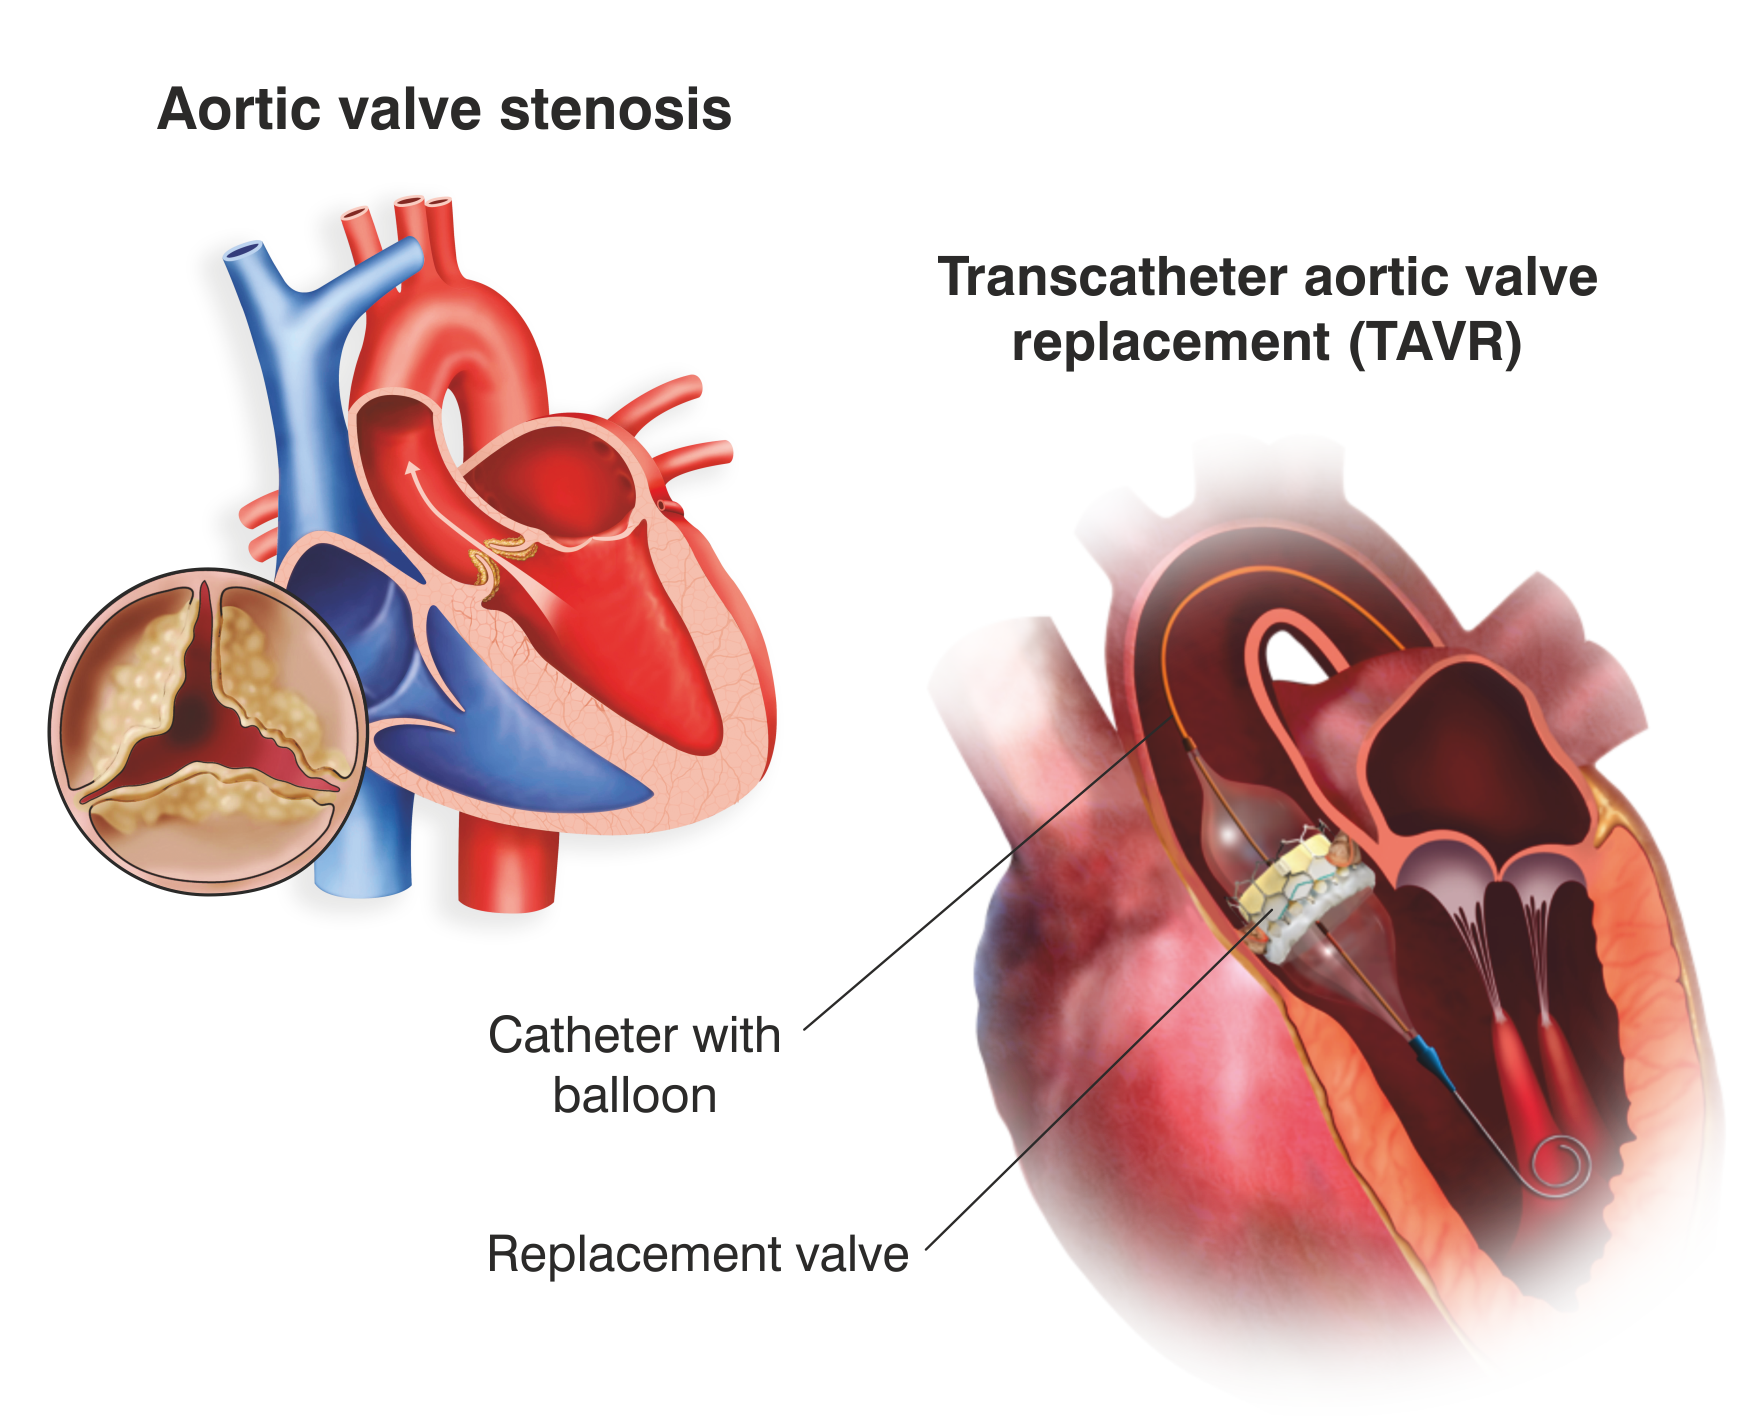 Transcatheter Aortic Valve Implantation (TAVI) or Transcatheter Aortic Valve Replacement (TAVR)